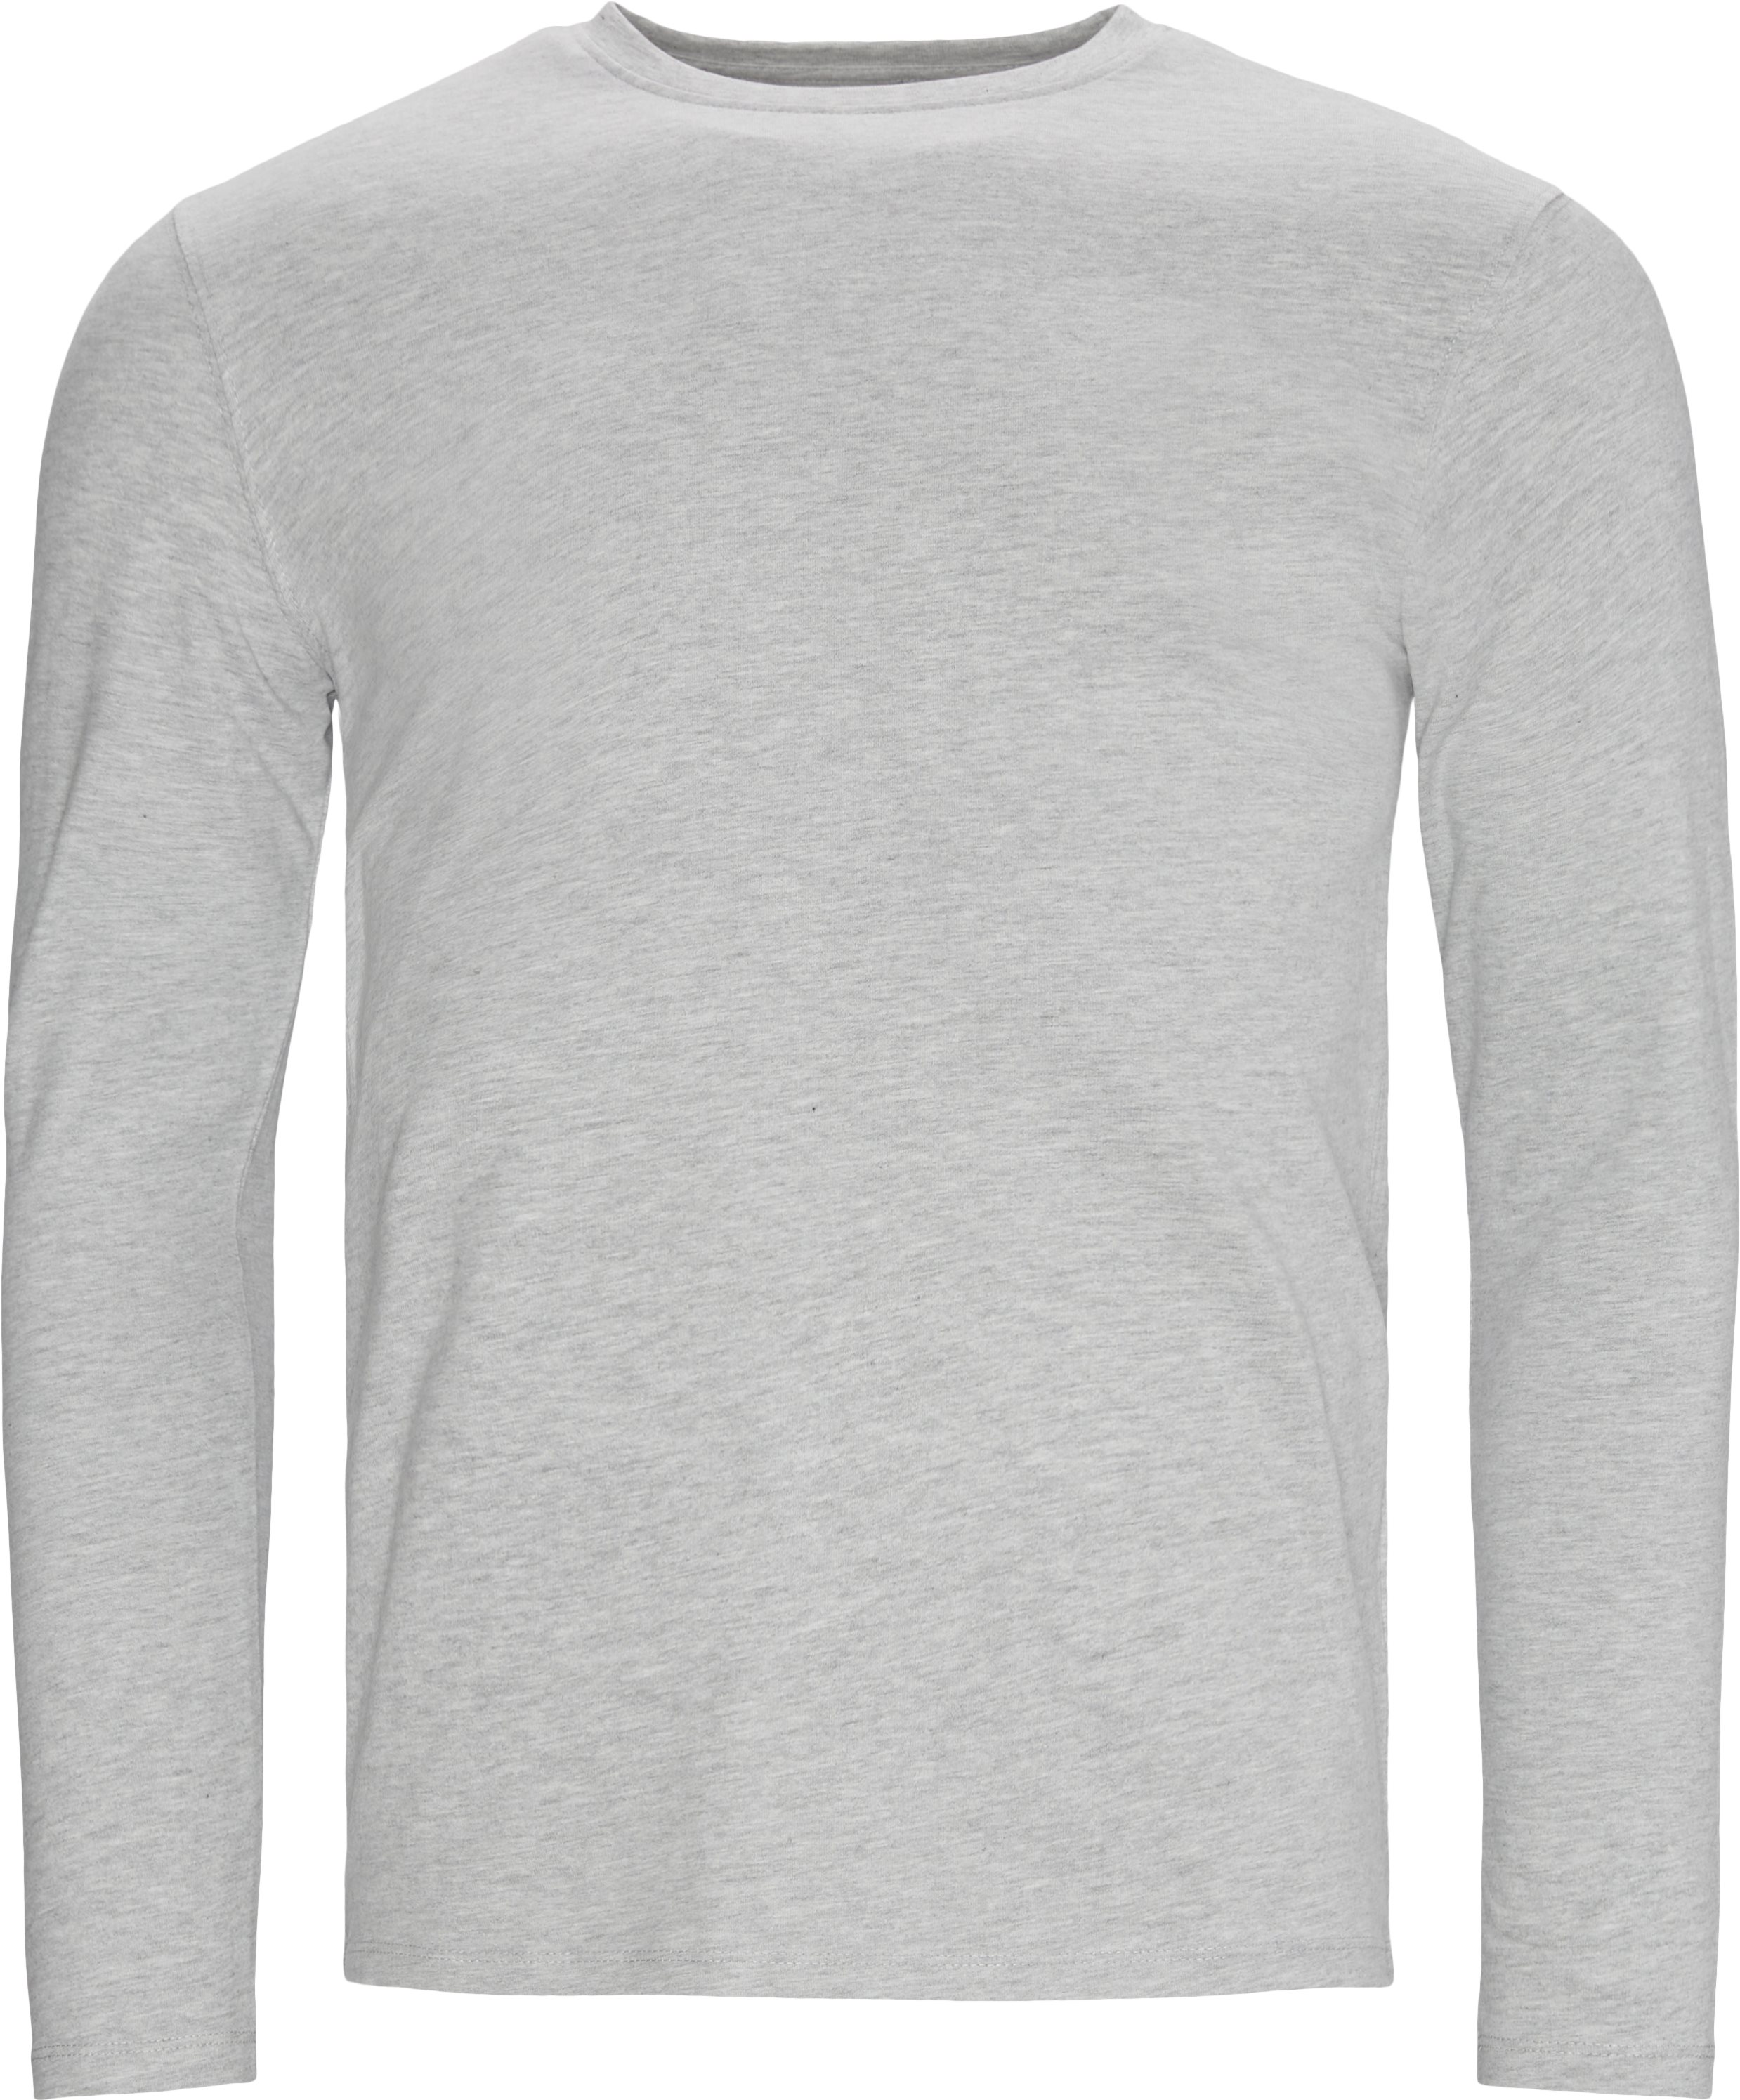 Ray Long Sleeve Tee - T-shirts - Regular - Grå